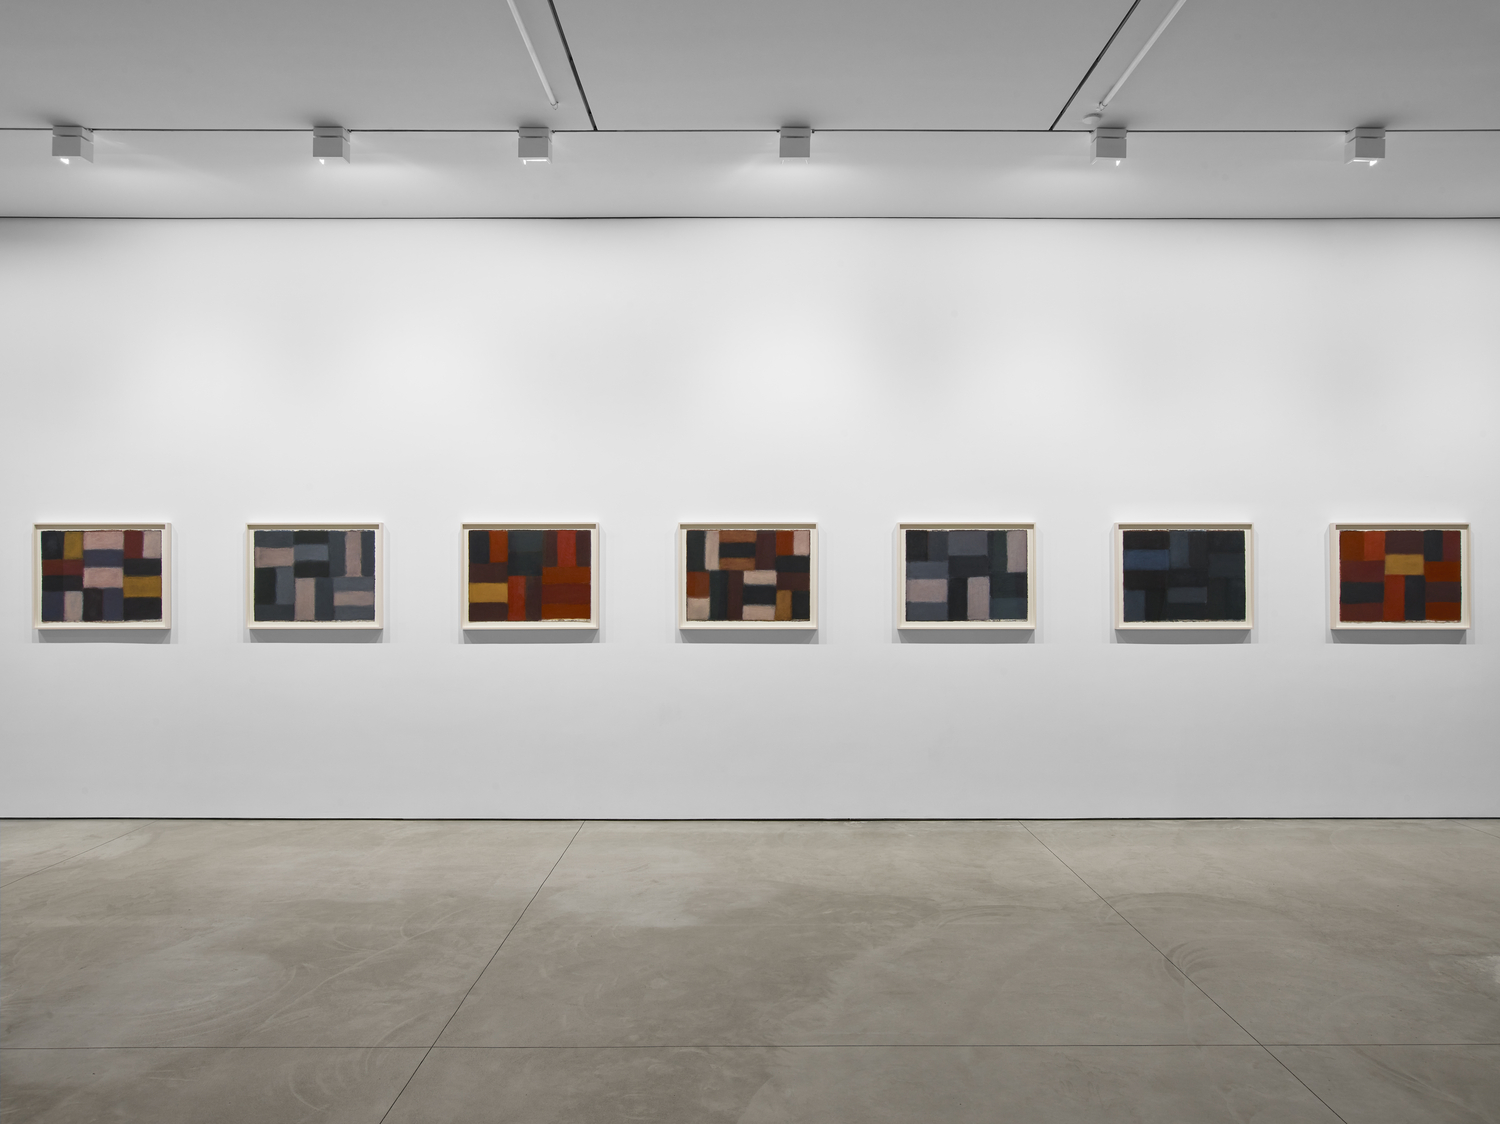 Sean Scully: The 12 / Dark Windows, Exhibition view. 508 West 24th Street and 447 West 17th Street, New York. 6 May – 18 June, 2021. © Sean Scully. Courtesy Lisson Gallery